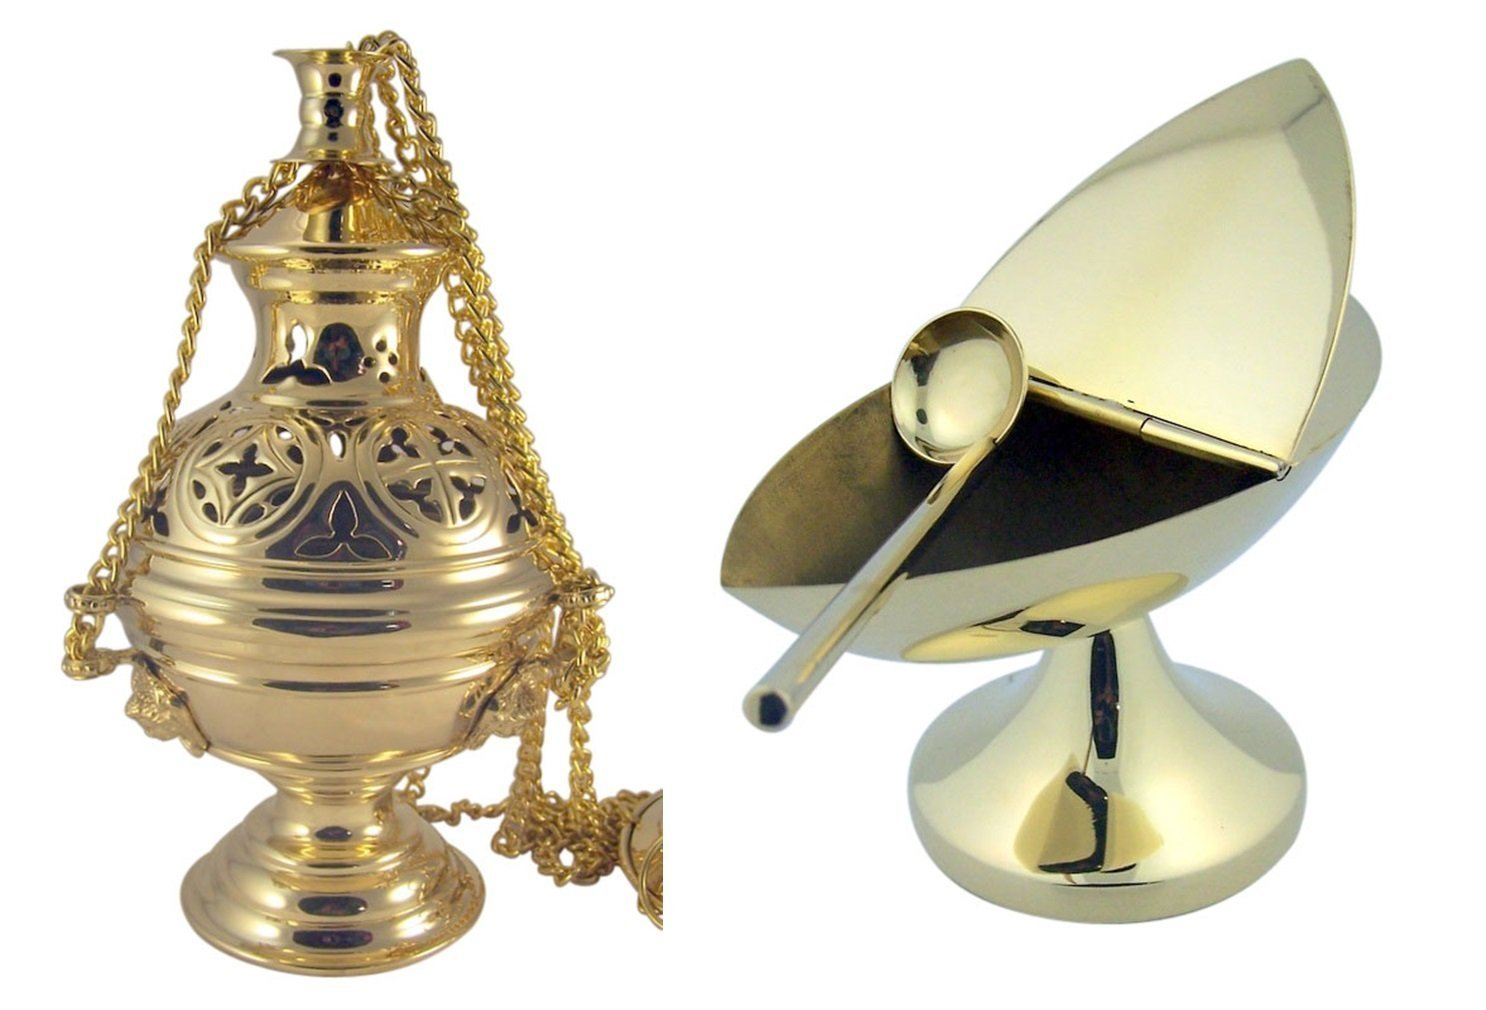 Cathedral Hanging Church Censor and Boat Gothic Brass Incense Charcoal Burner by Religious Gifts